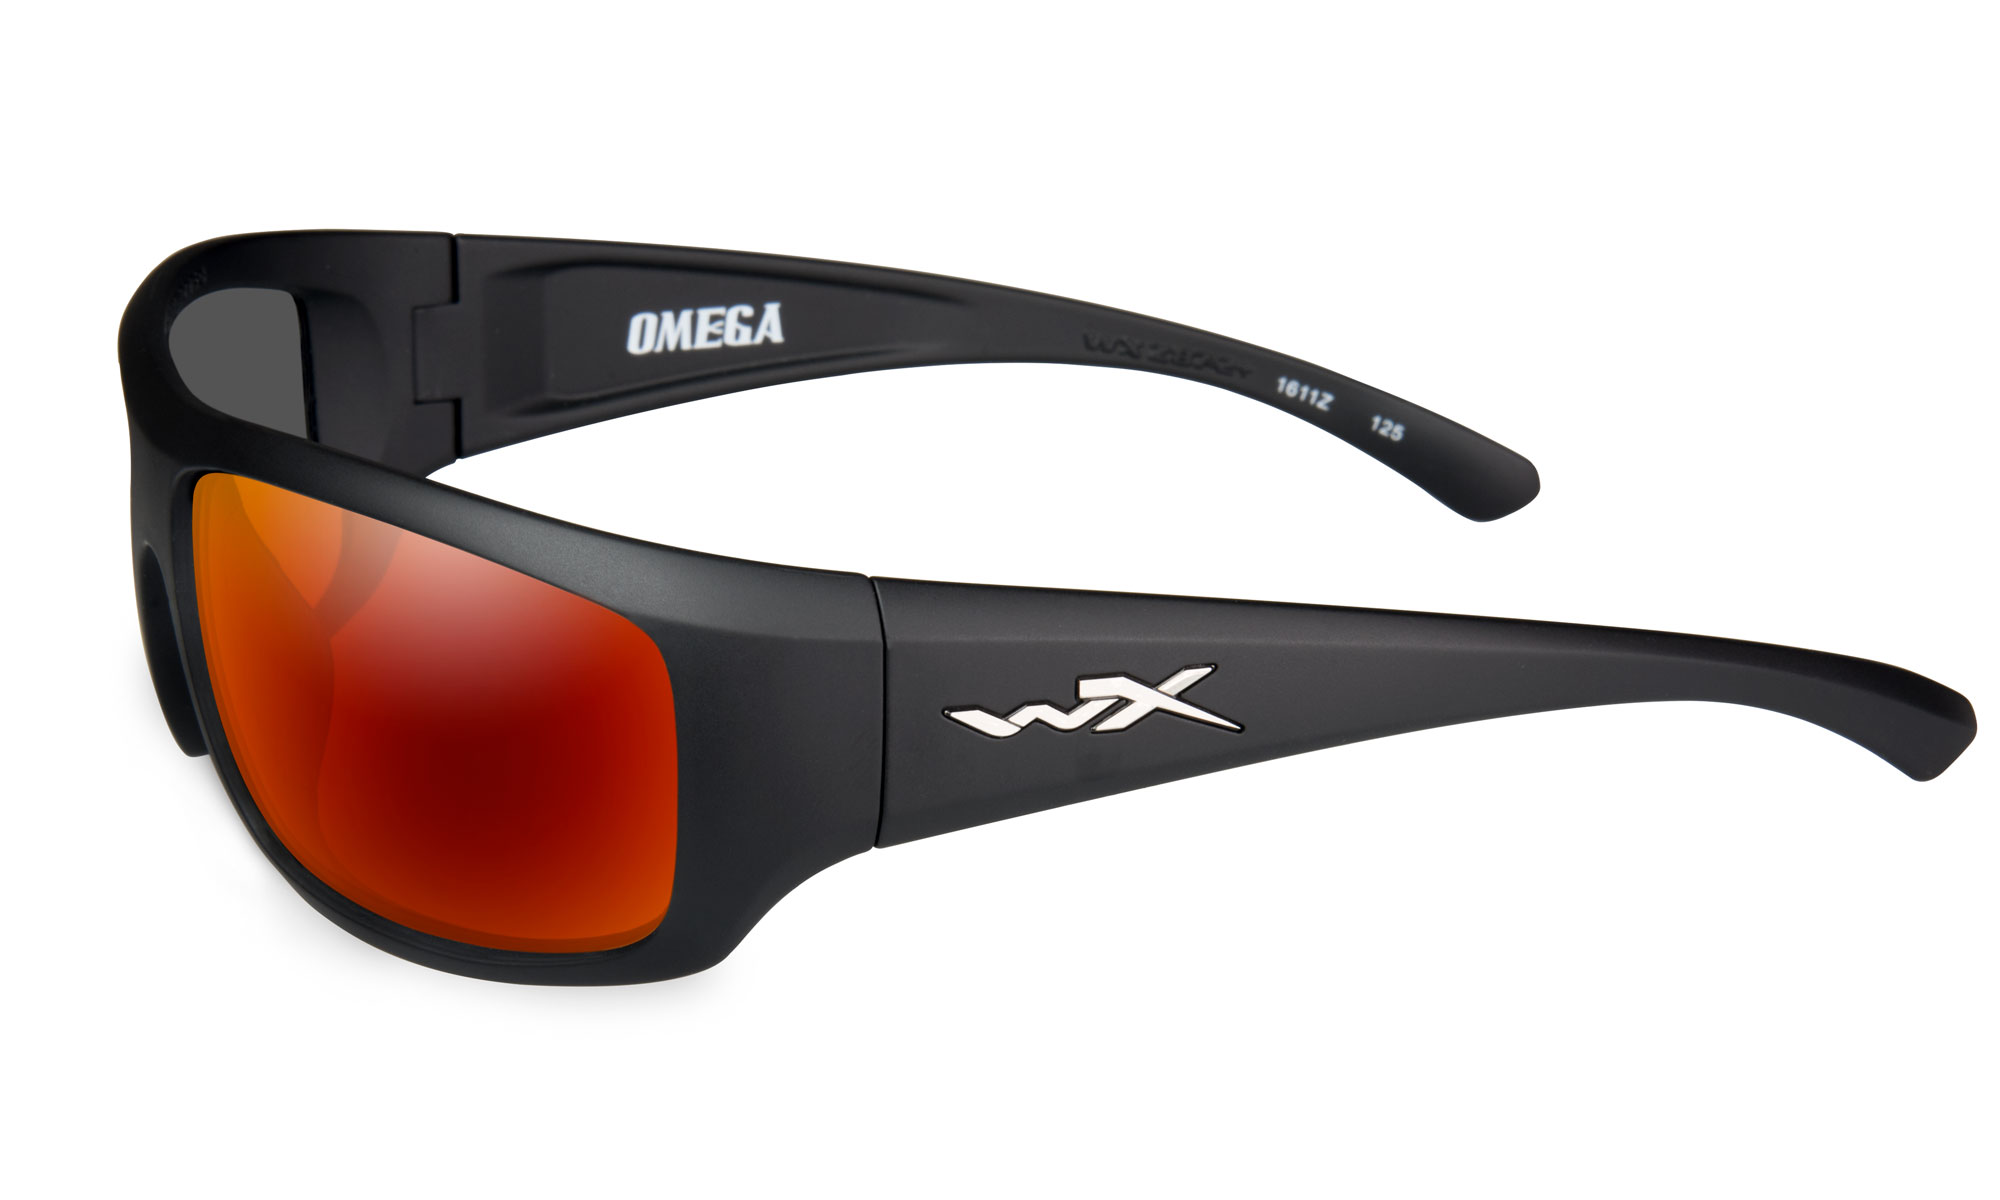 69be07706b861 Wiley-X WX Omega Matte Black with Polarized Crimson Mirror Lenses ...